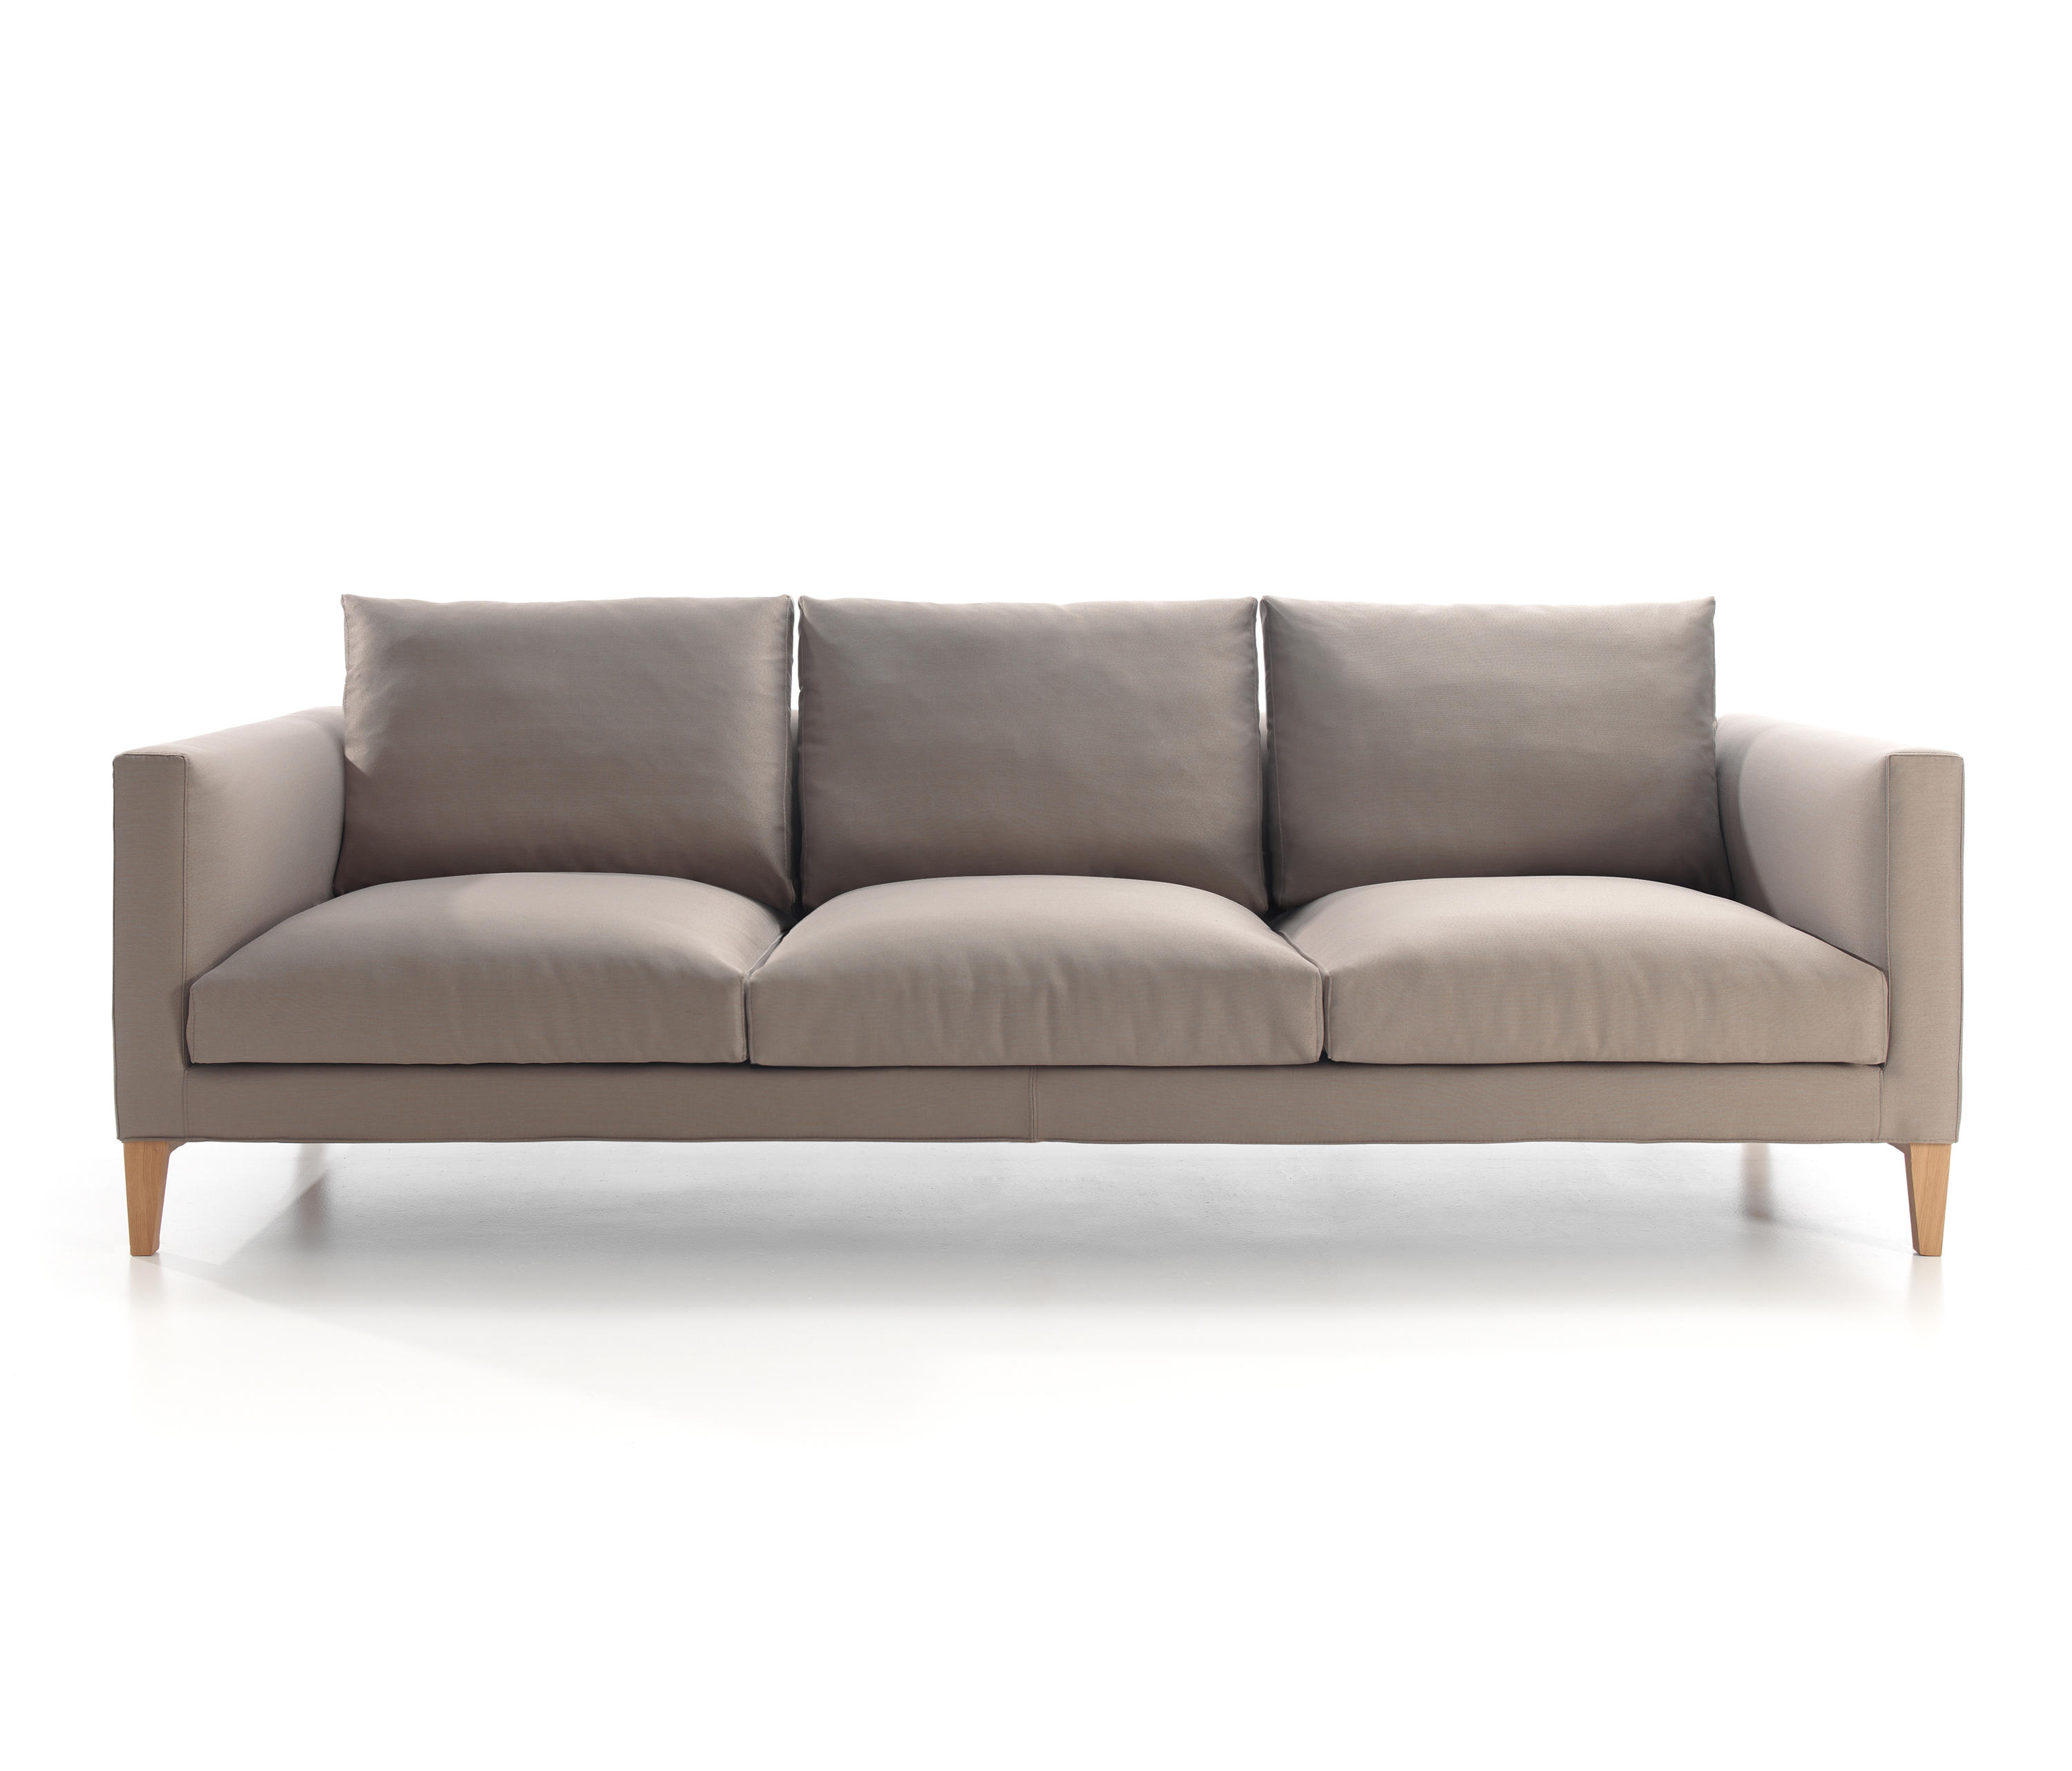 SLIM Lounge sofas from BELTA & FRAJUMAR